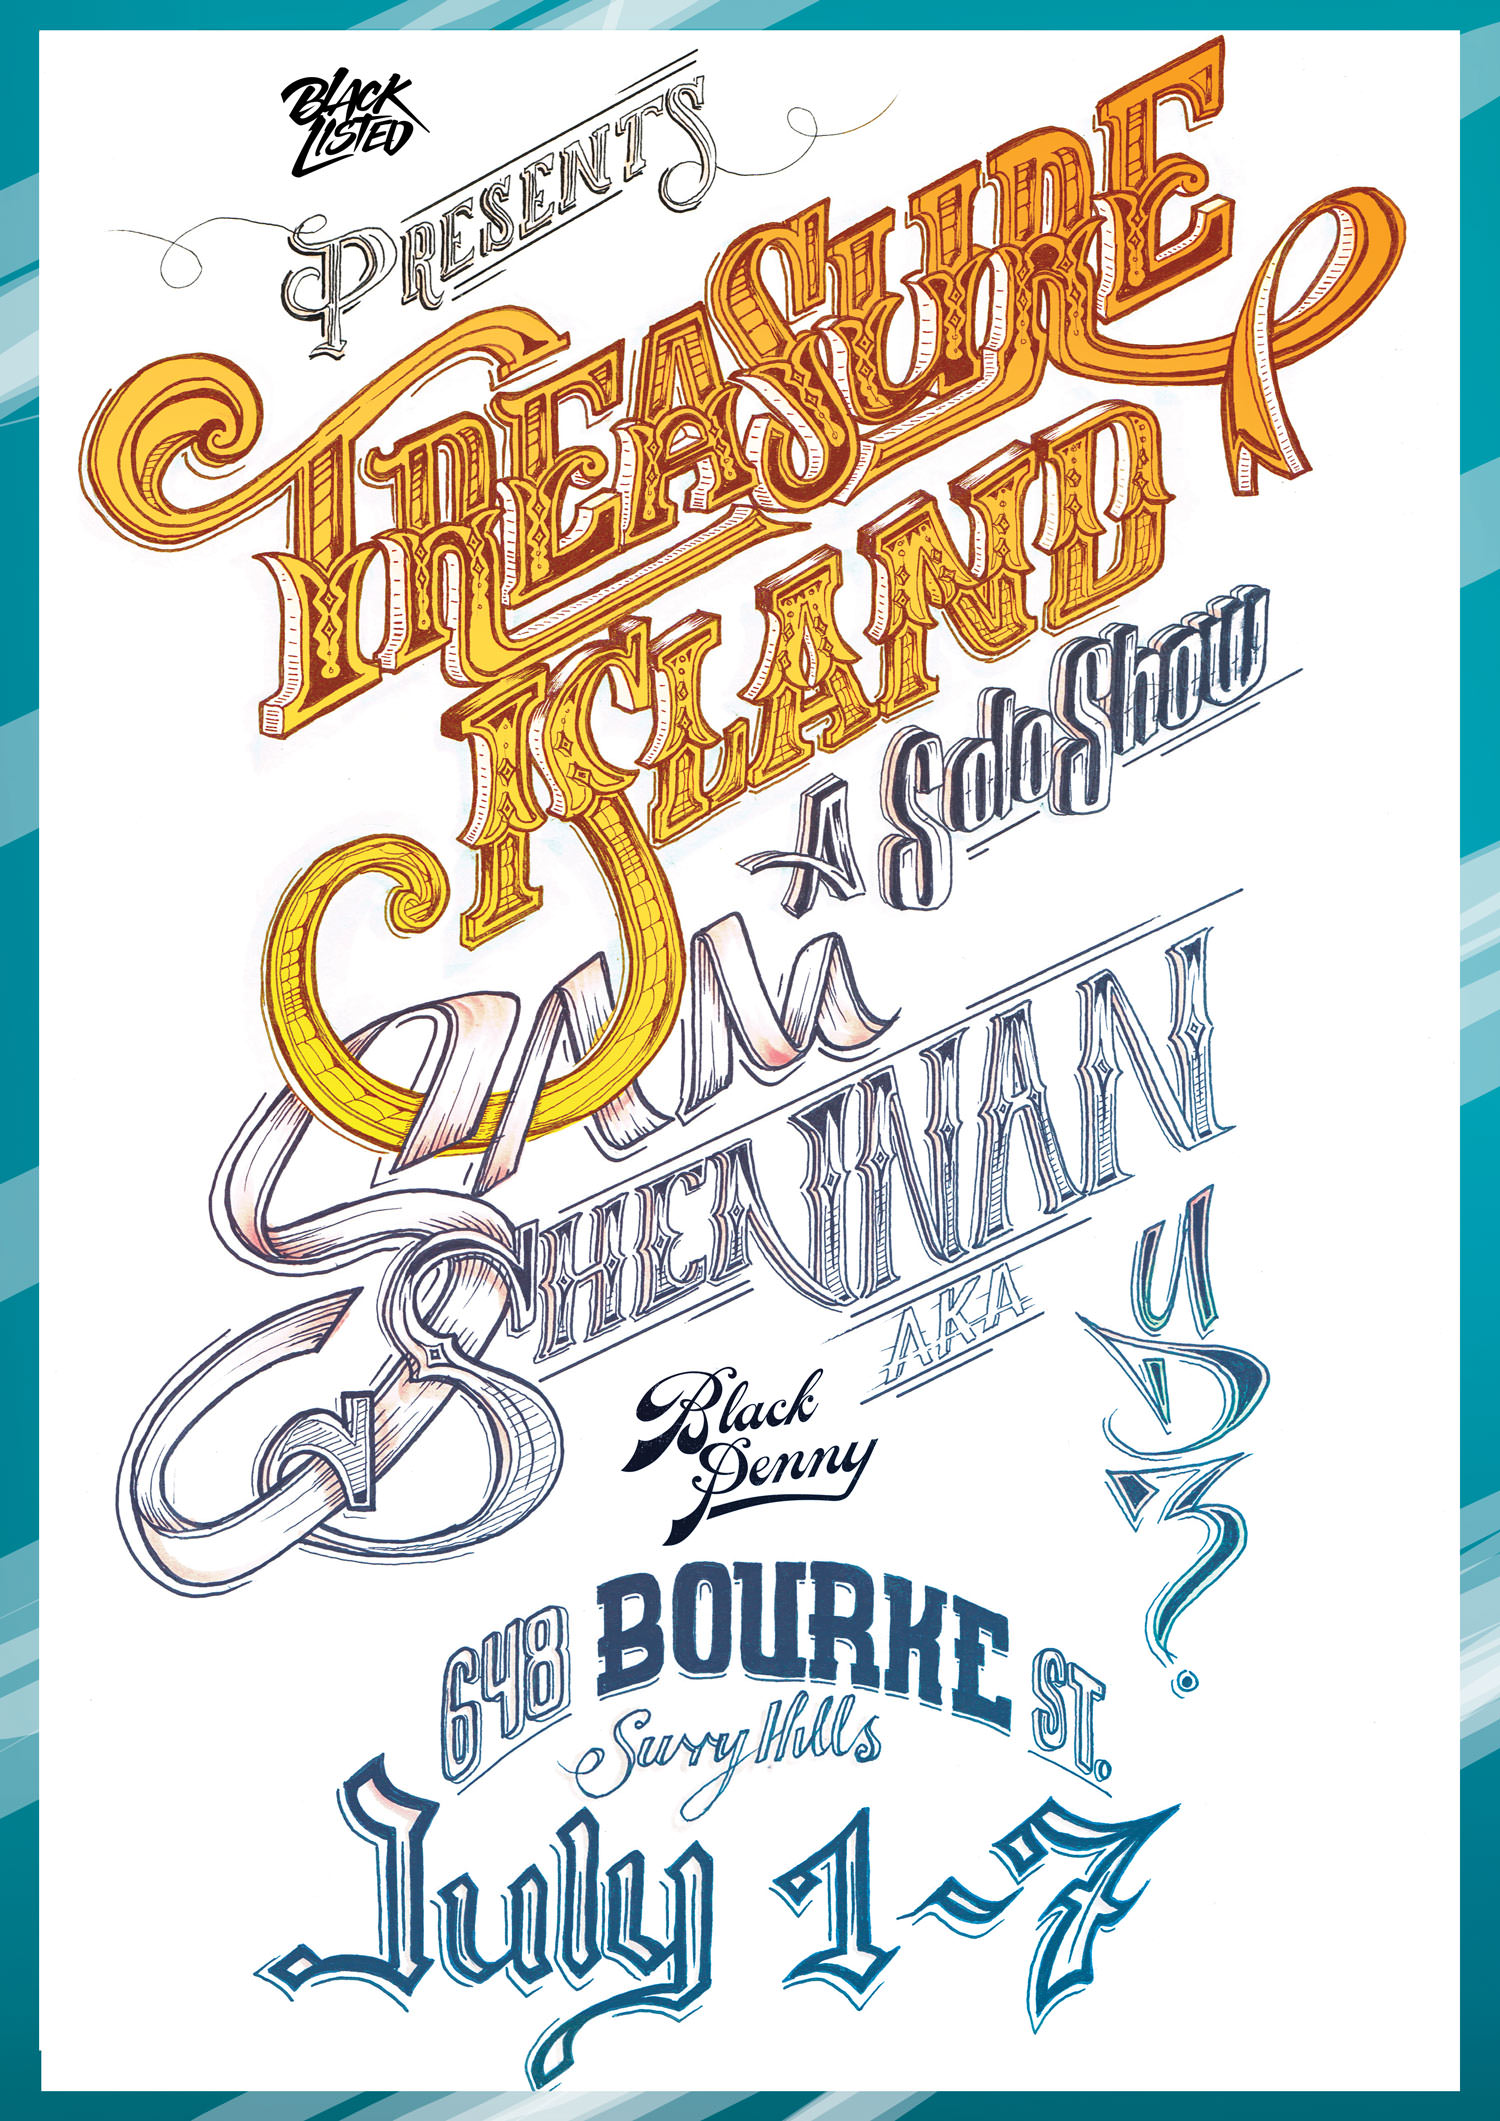 poster-ud3-sam-shennan-lettering-typography-hand-drawn-drawing-type-designer-artist-sydney-exhibition